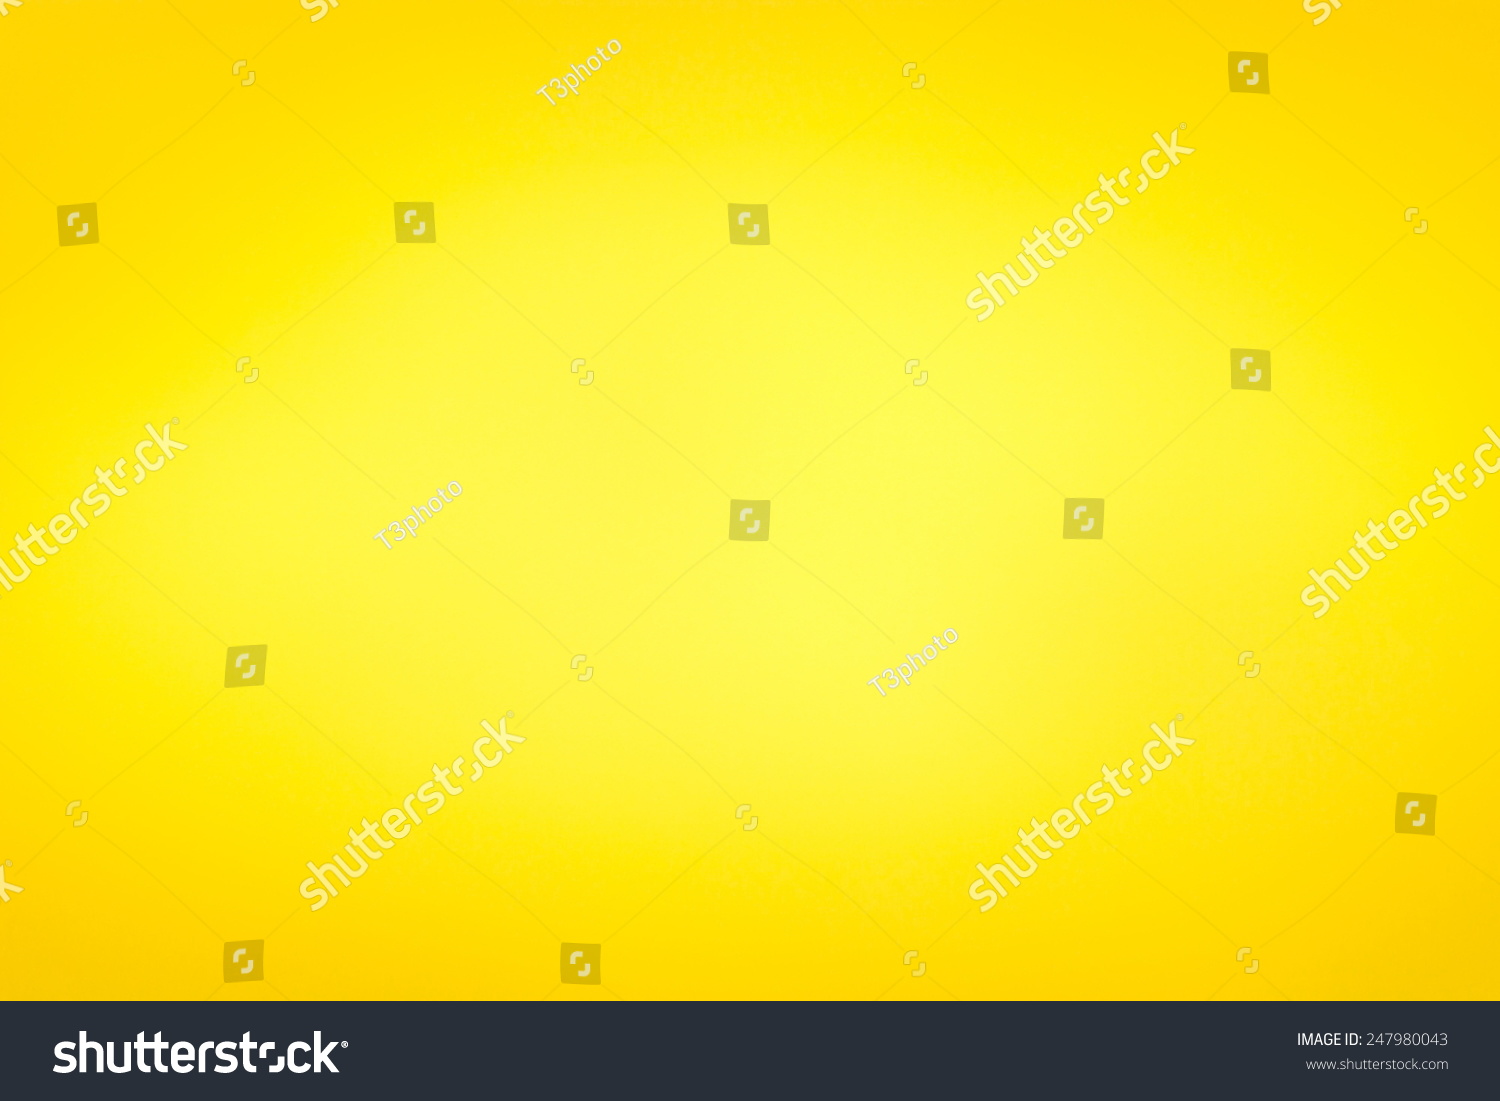 colorful blurred backgrounds / yellow background #247980043 - 123PhotoFree.com